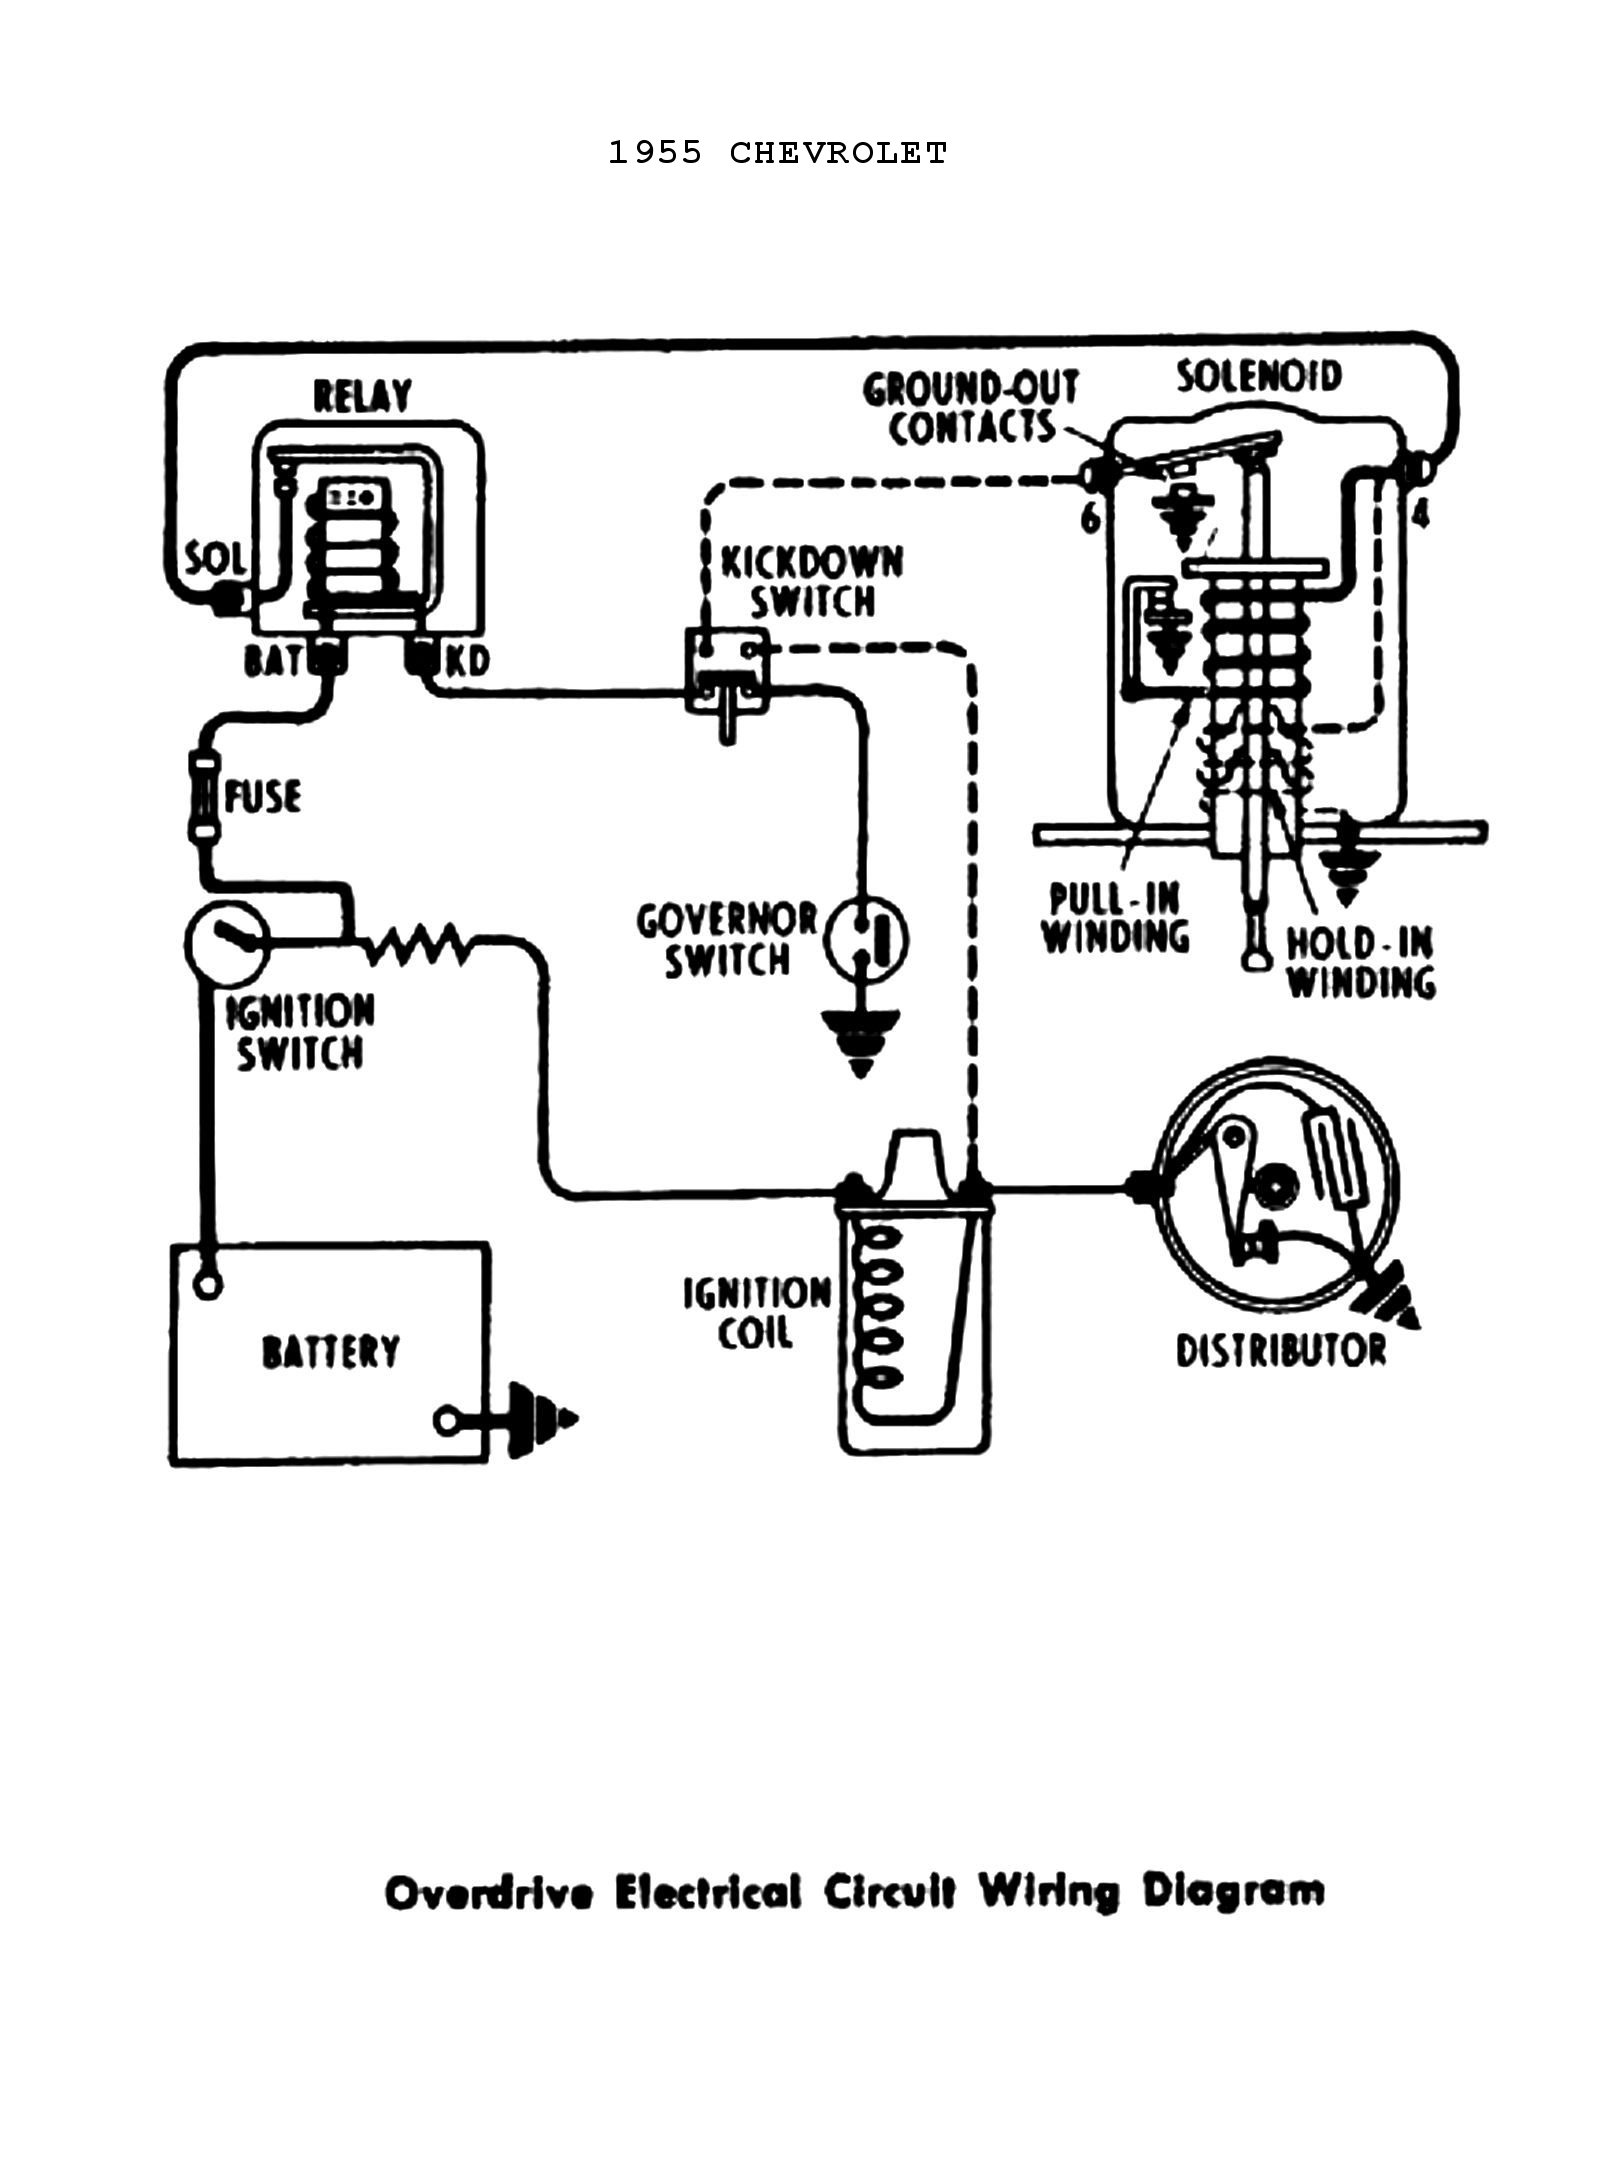 1983 chevy ignition switch wiring diagram search for wiring diagrams u2022 rh stephenpoon co 1969 ford mustang ignition switch wiring diagram 1969 ford f100 ignition switch wiring diagram